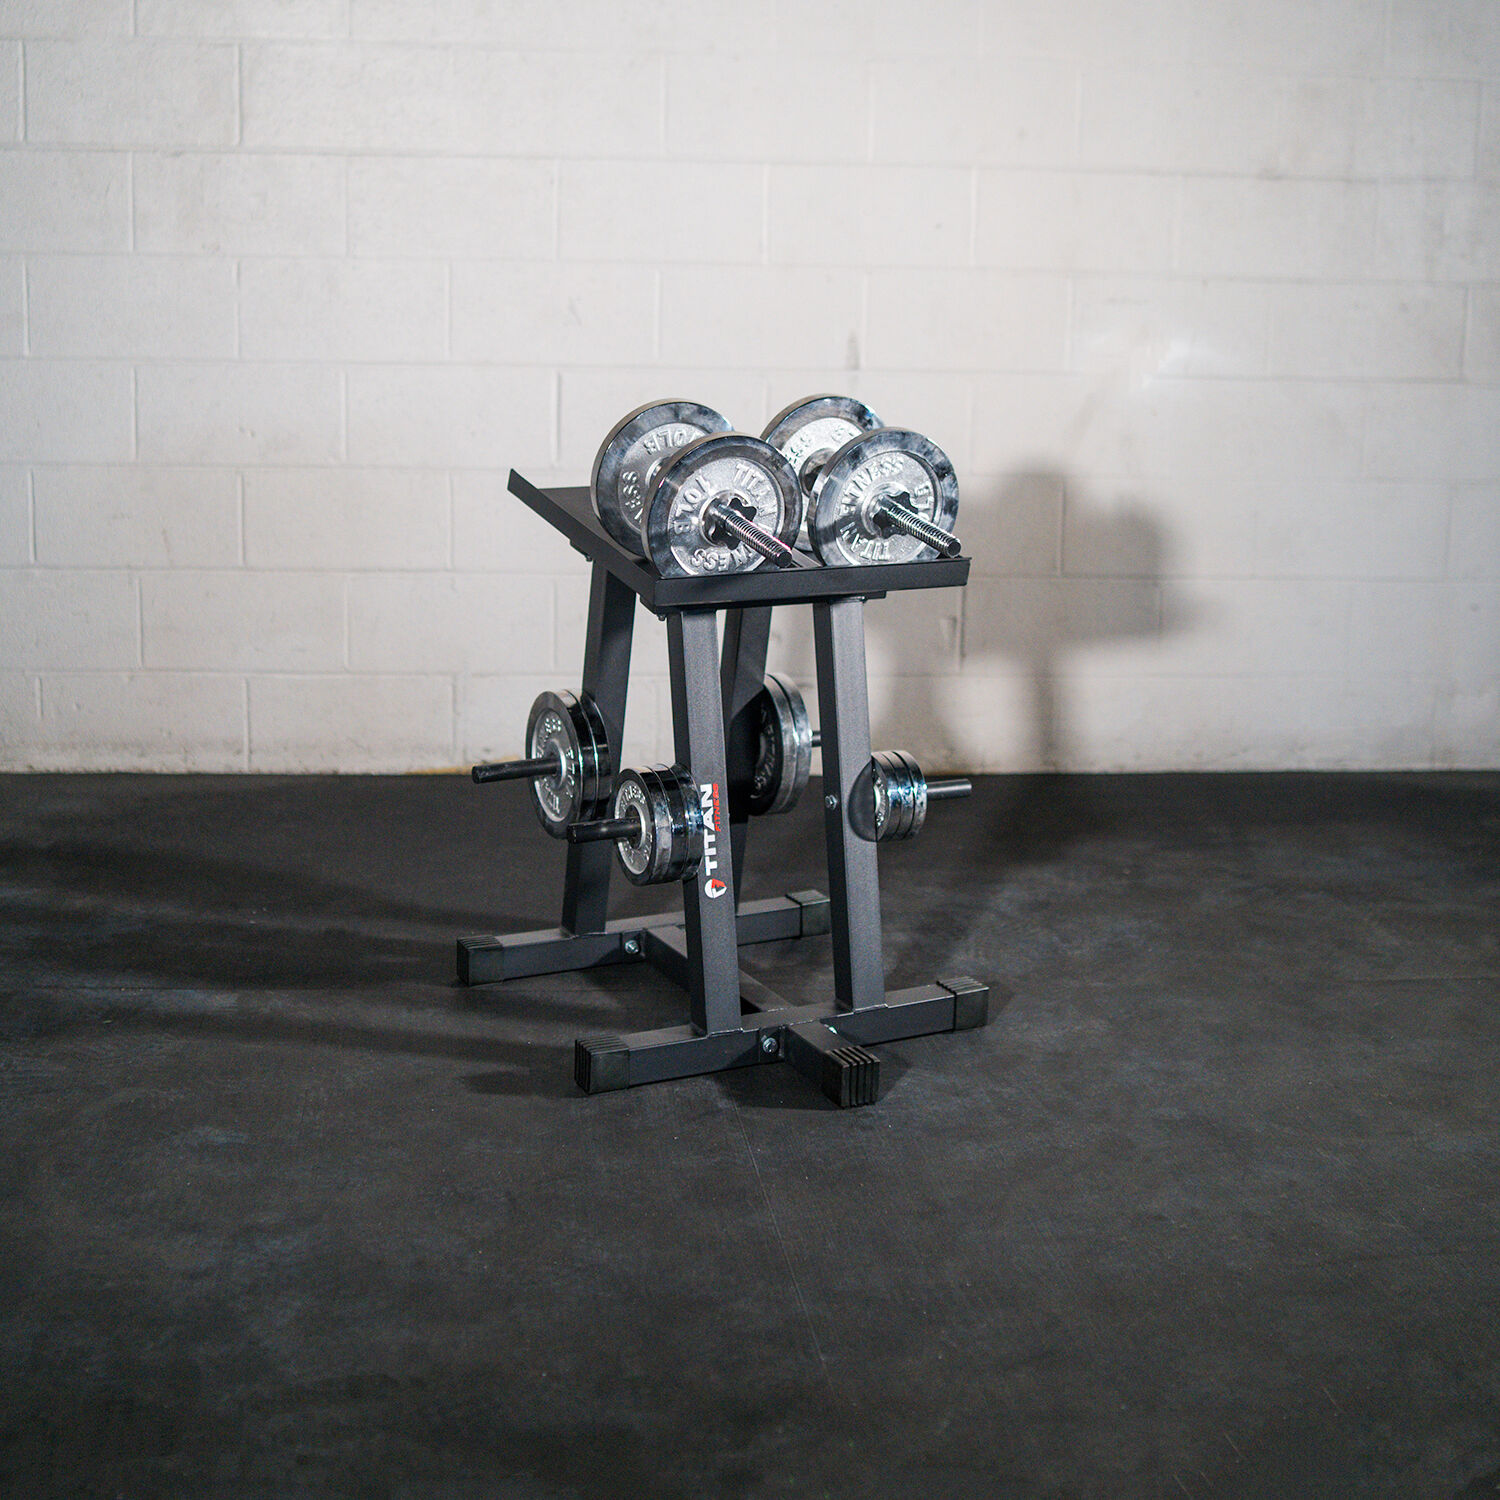 dumbbell stand and plate tree power